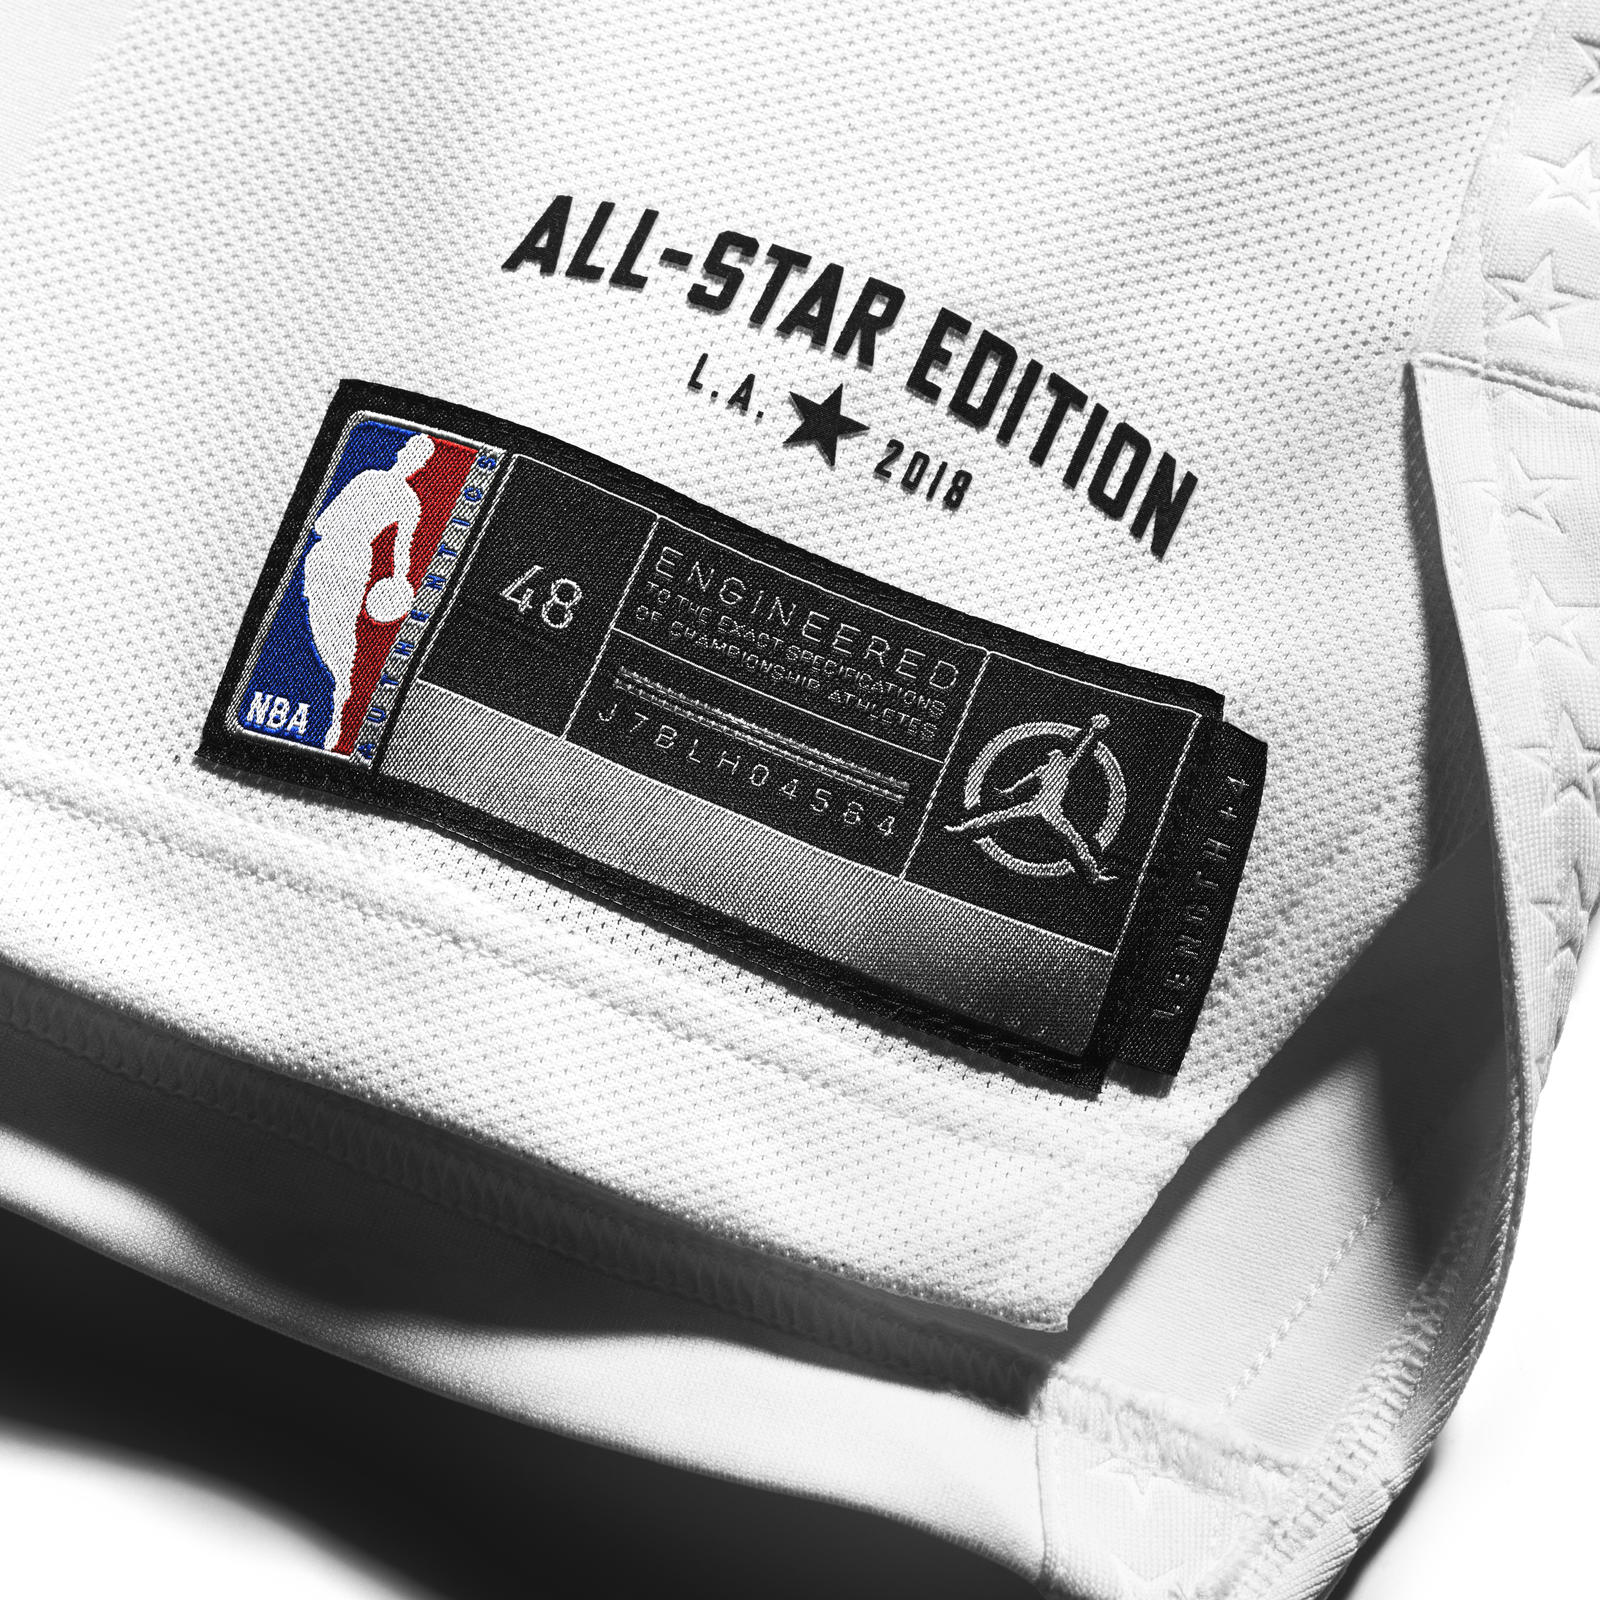 Jordan Brand 2018 NBA All-Star Preview 30